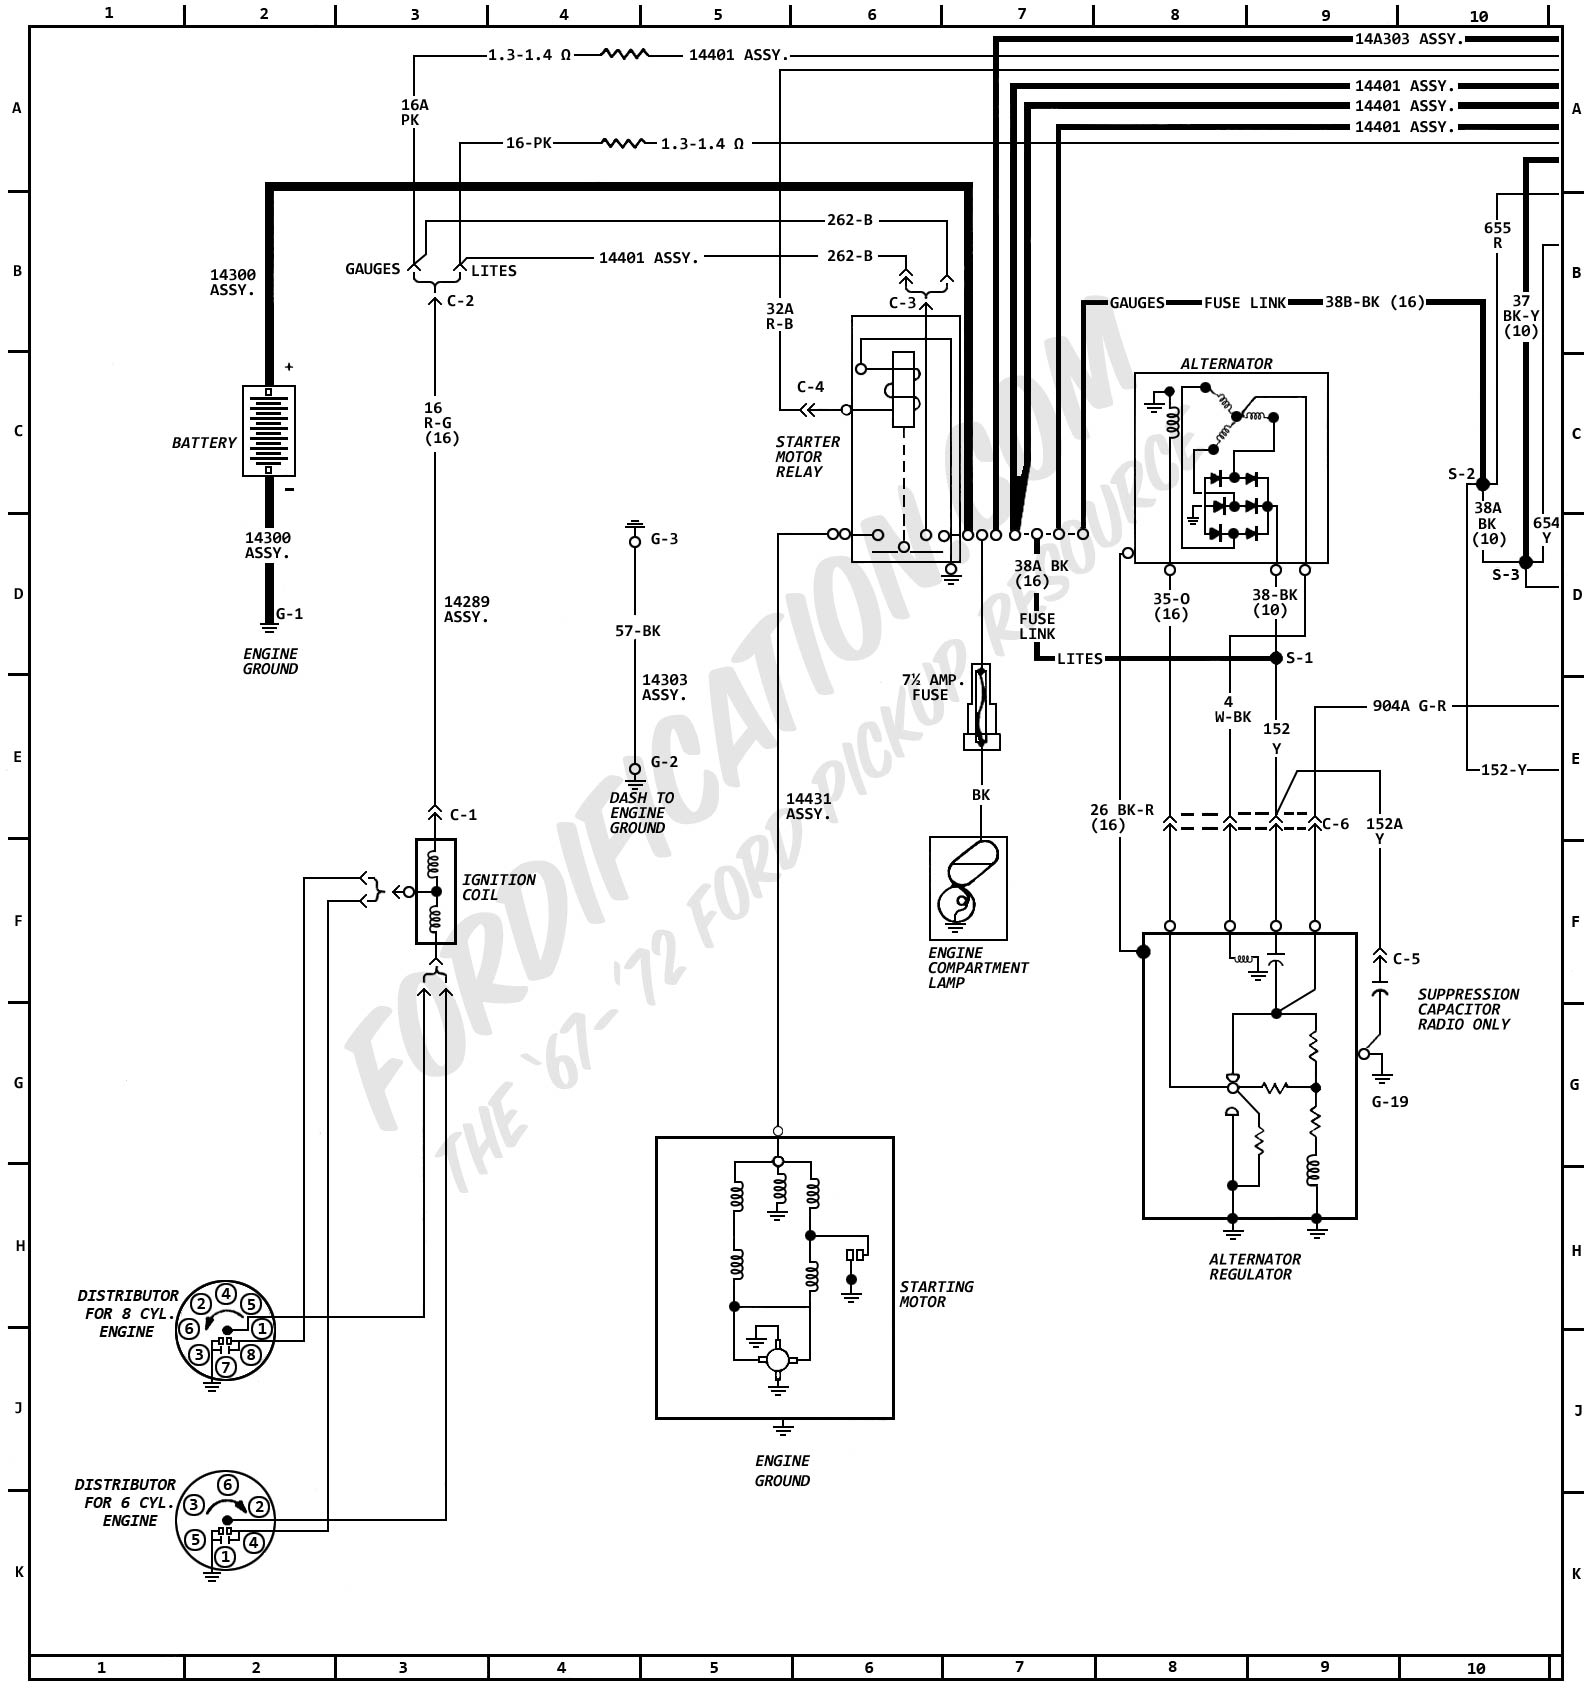 Wiring Diagram 73 Ford Pickup